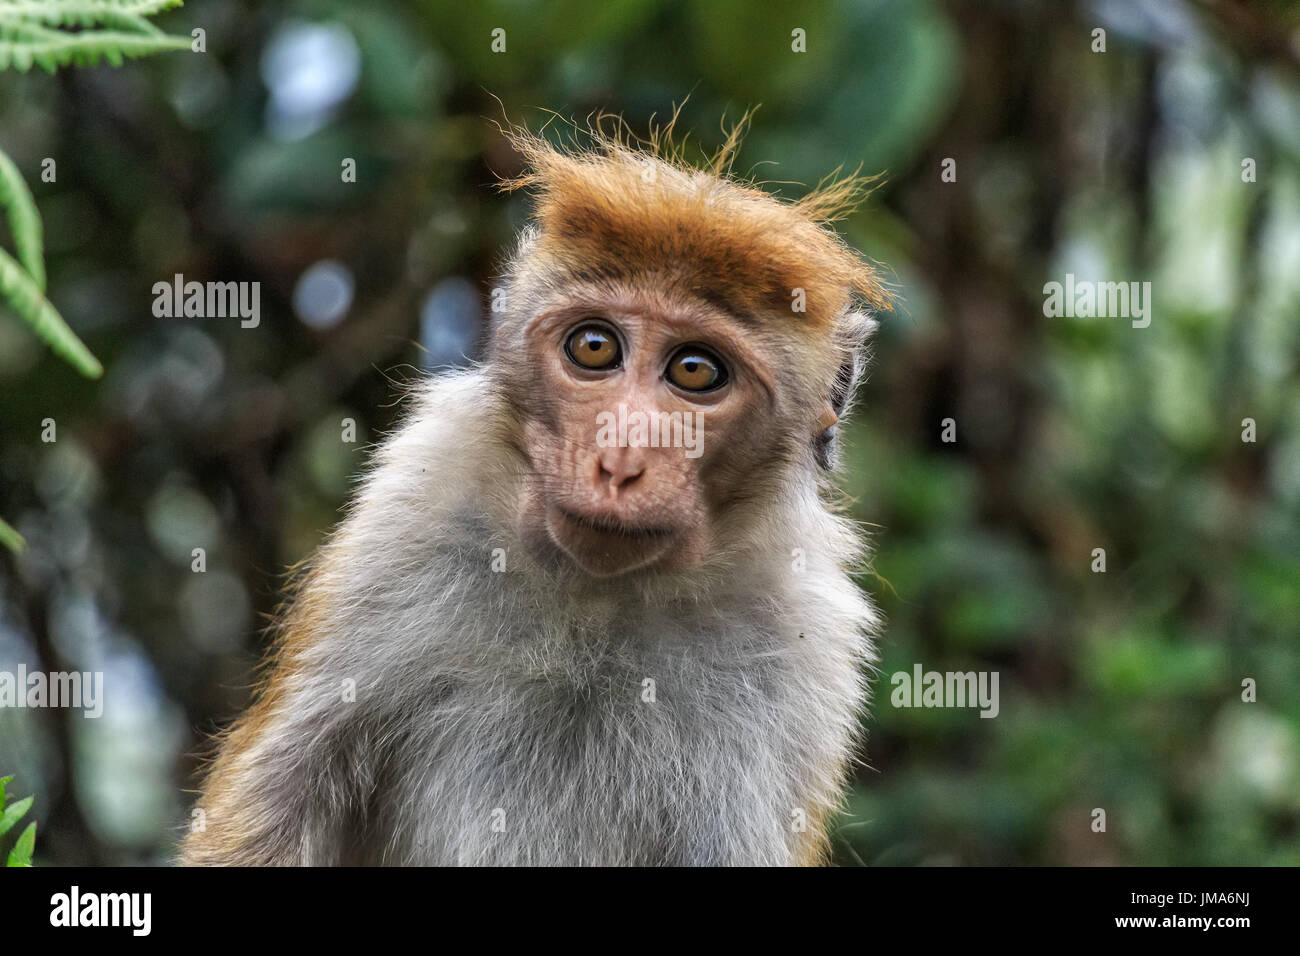 Close-up of Sri-Lankan toque macaque or Macaca sinica - Stock Image